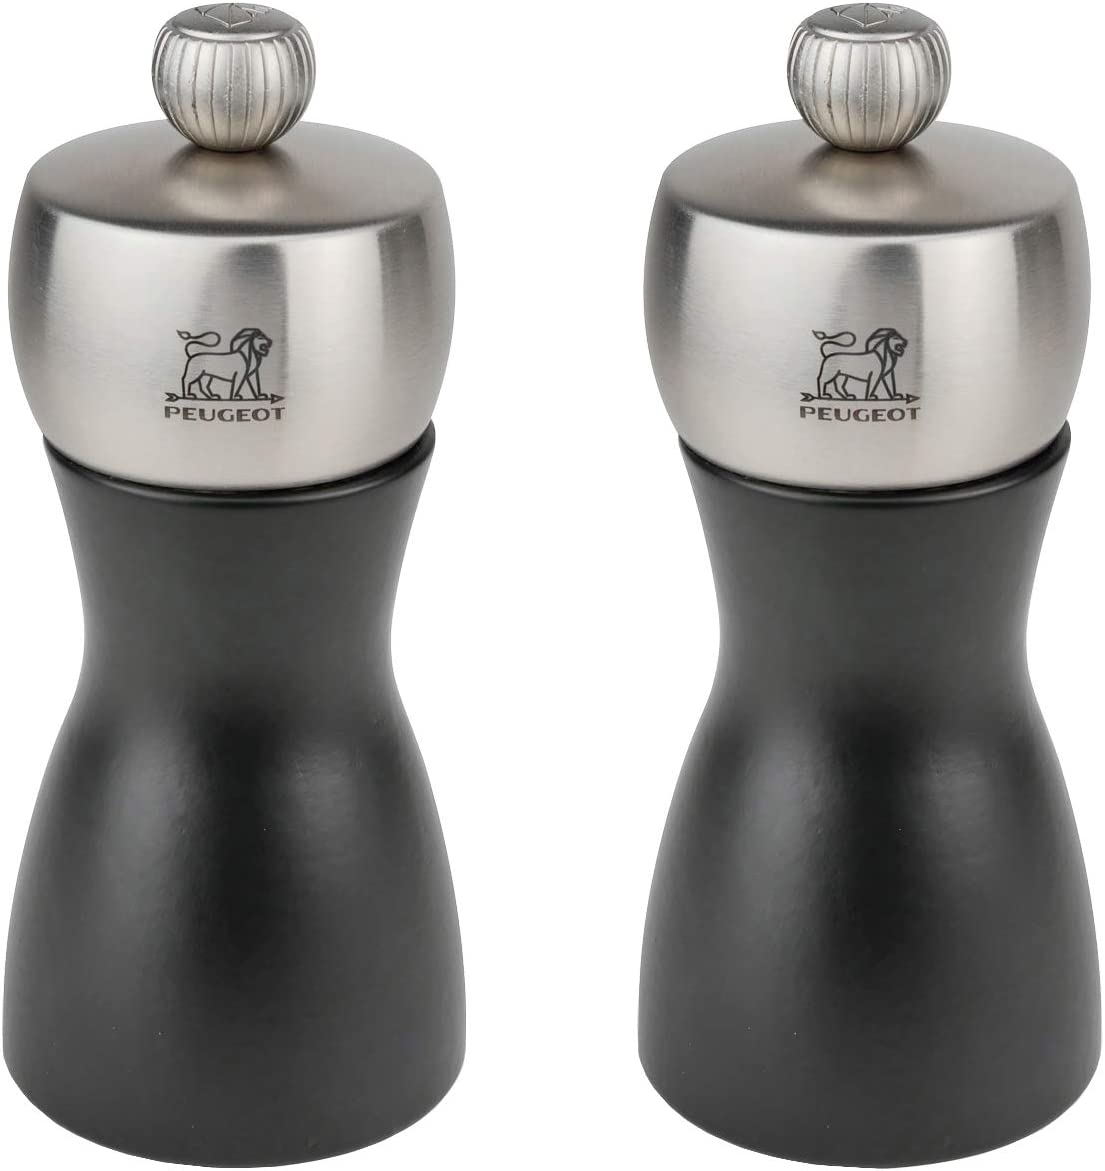 Peugeot Fidji Stainless Steel Inexpensive Salt and Max 54% OFF 12cm Mill Set 3 Pepper 4